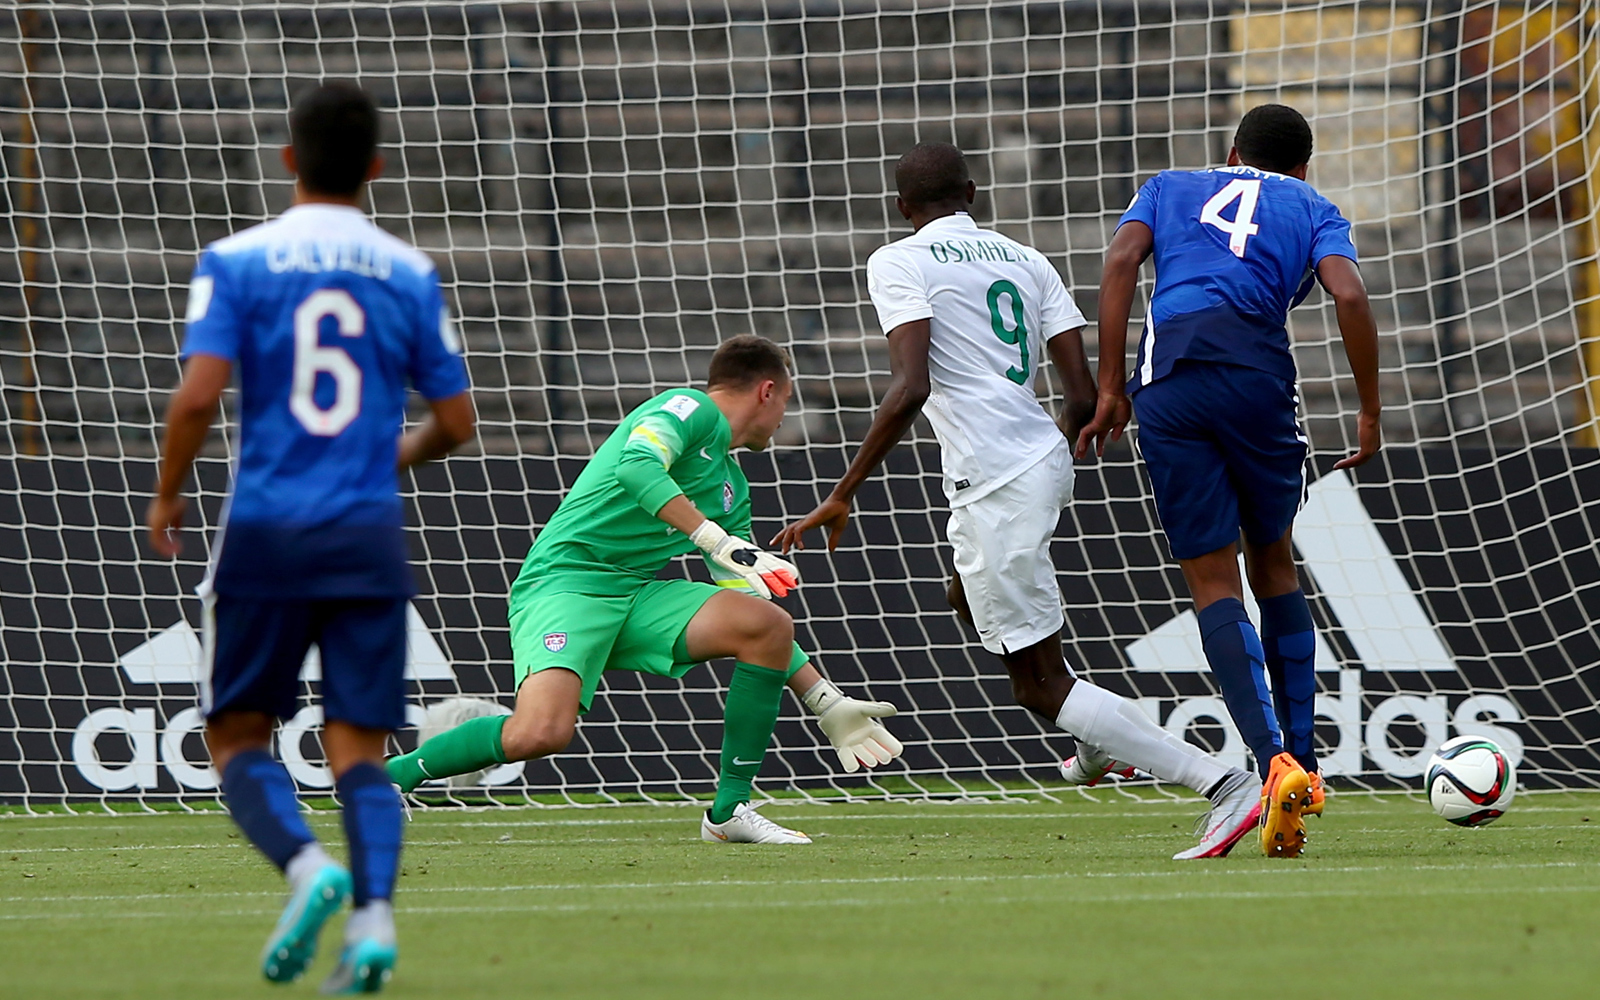 Victor Osimhen scores for Nigeria in a 2-0 win over the USA in the teams' FIFA Under-17 World Cup opener in Chile.